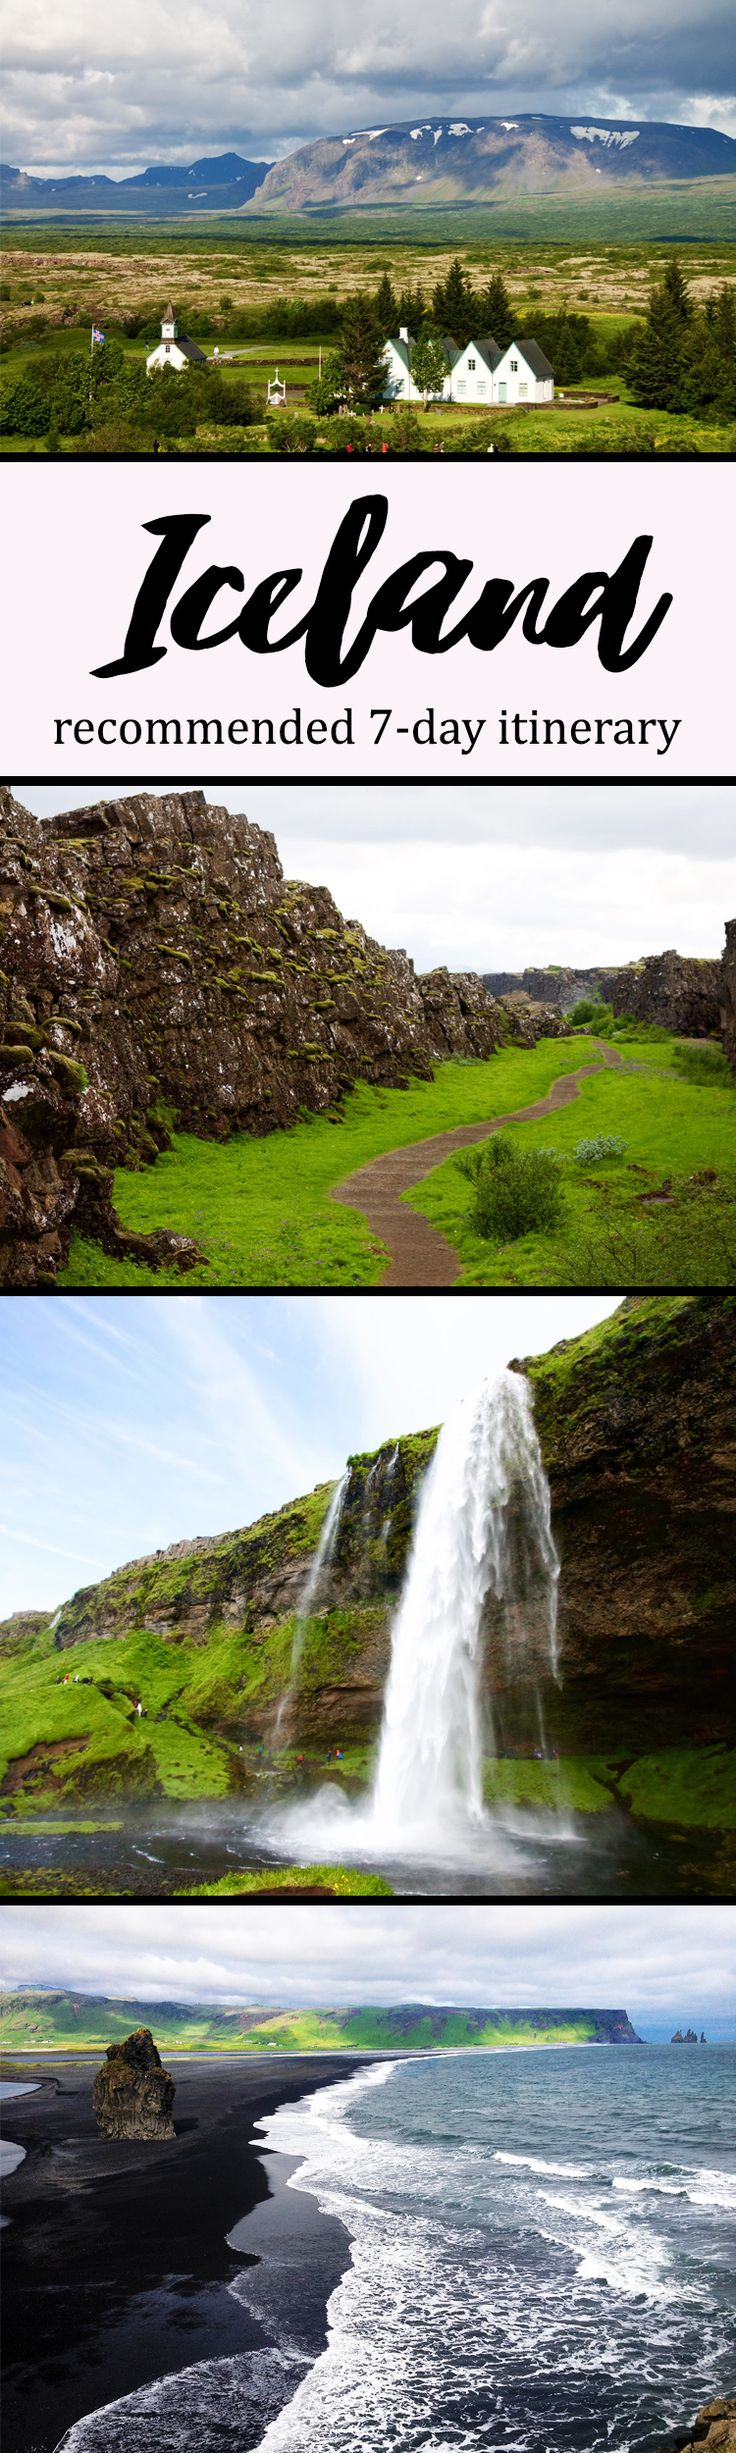 If you too only are one of the millions of North Americans who can only afford a few days in Iceland and want to cram in as many sights as possible, you'll want to read the itinerary below, which took me from Reykjavik to the Jokusarlon glacier lagoon and back.  Seven days, hundreds of stops, countless photos. Welcome to Iceland!